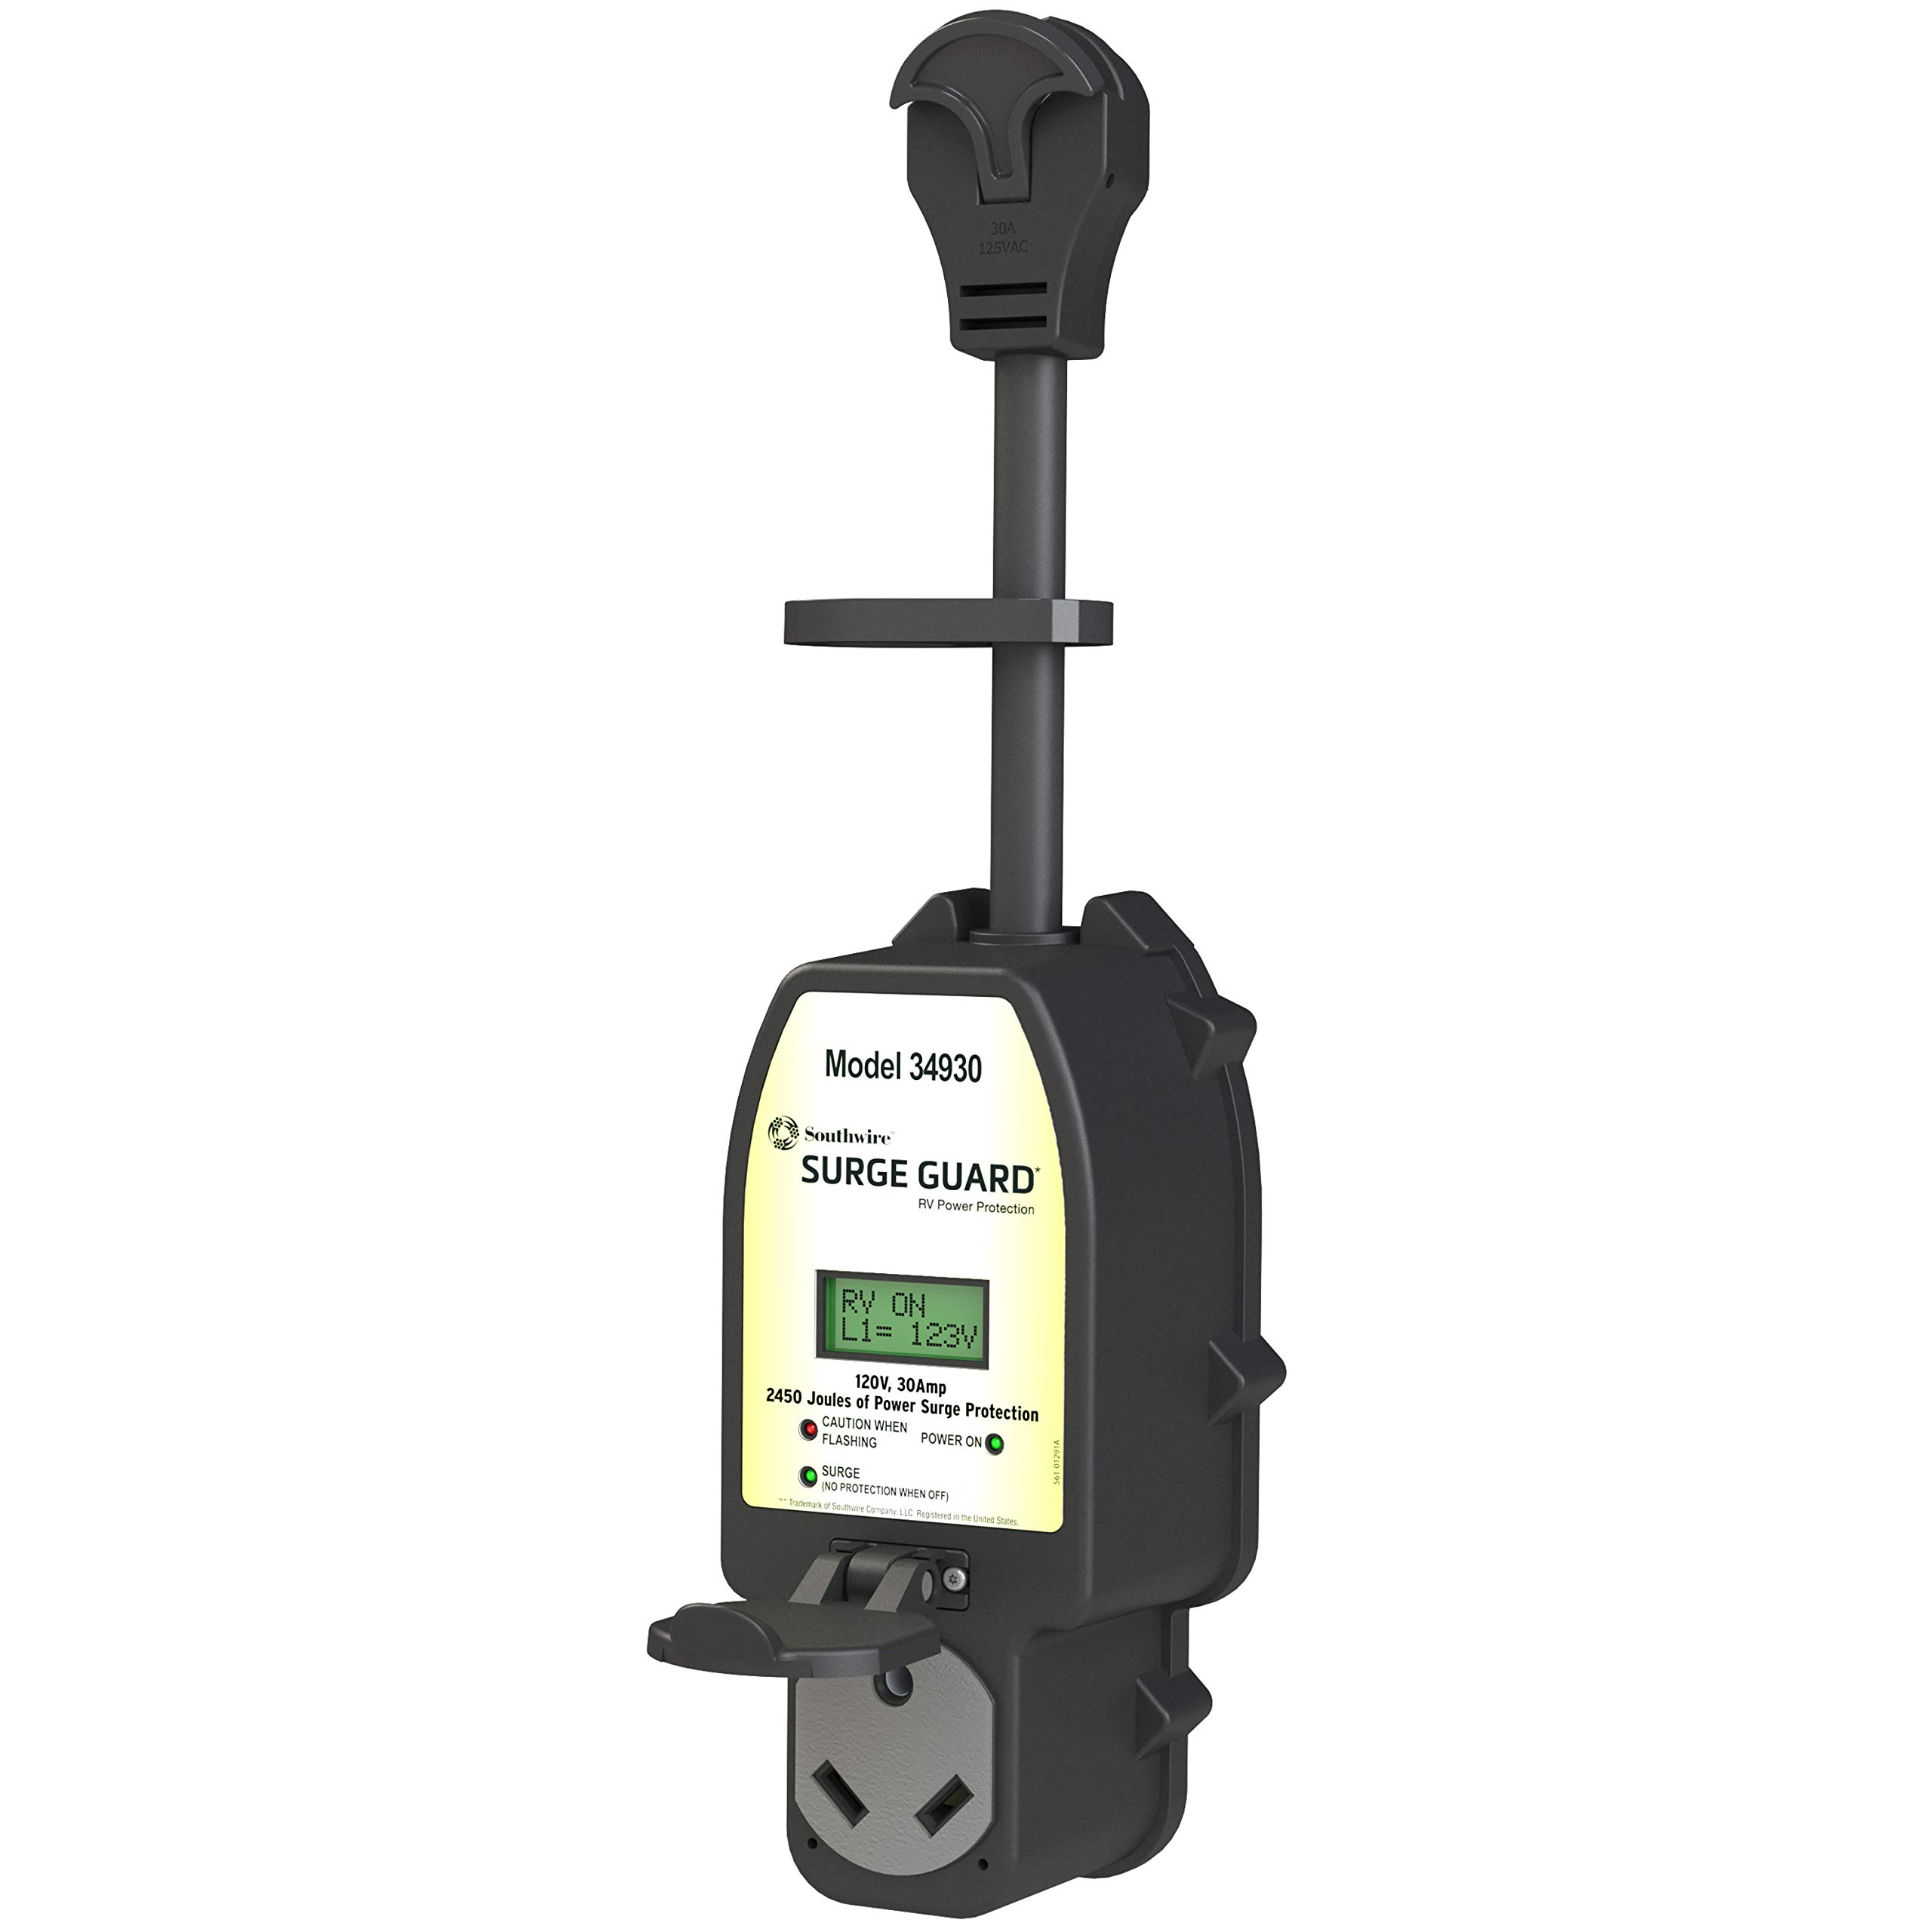 Southwire Black 34930 Surge Guard 30A-Full Protection Portable with LCD Display by Southwire (Image #1)